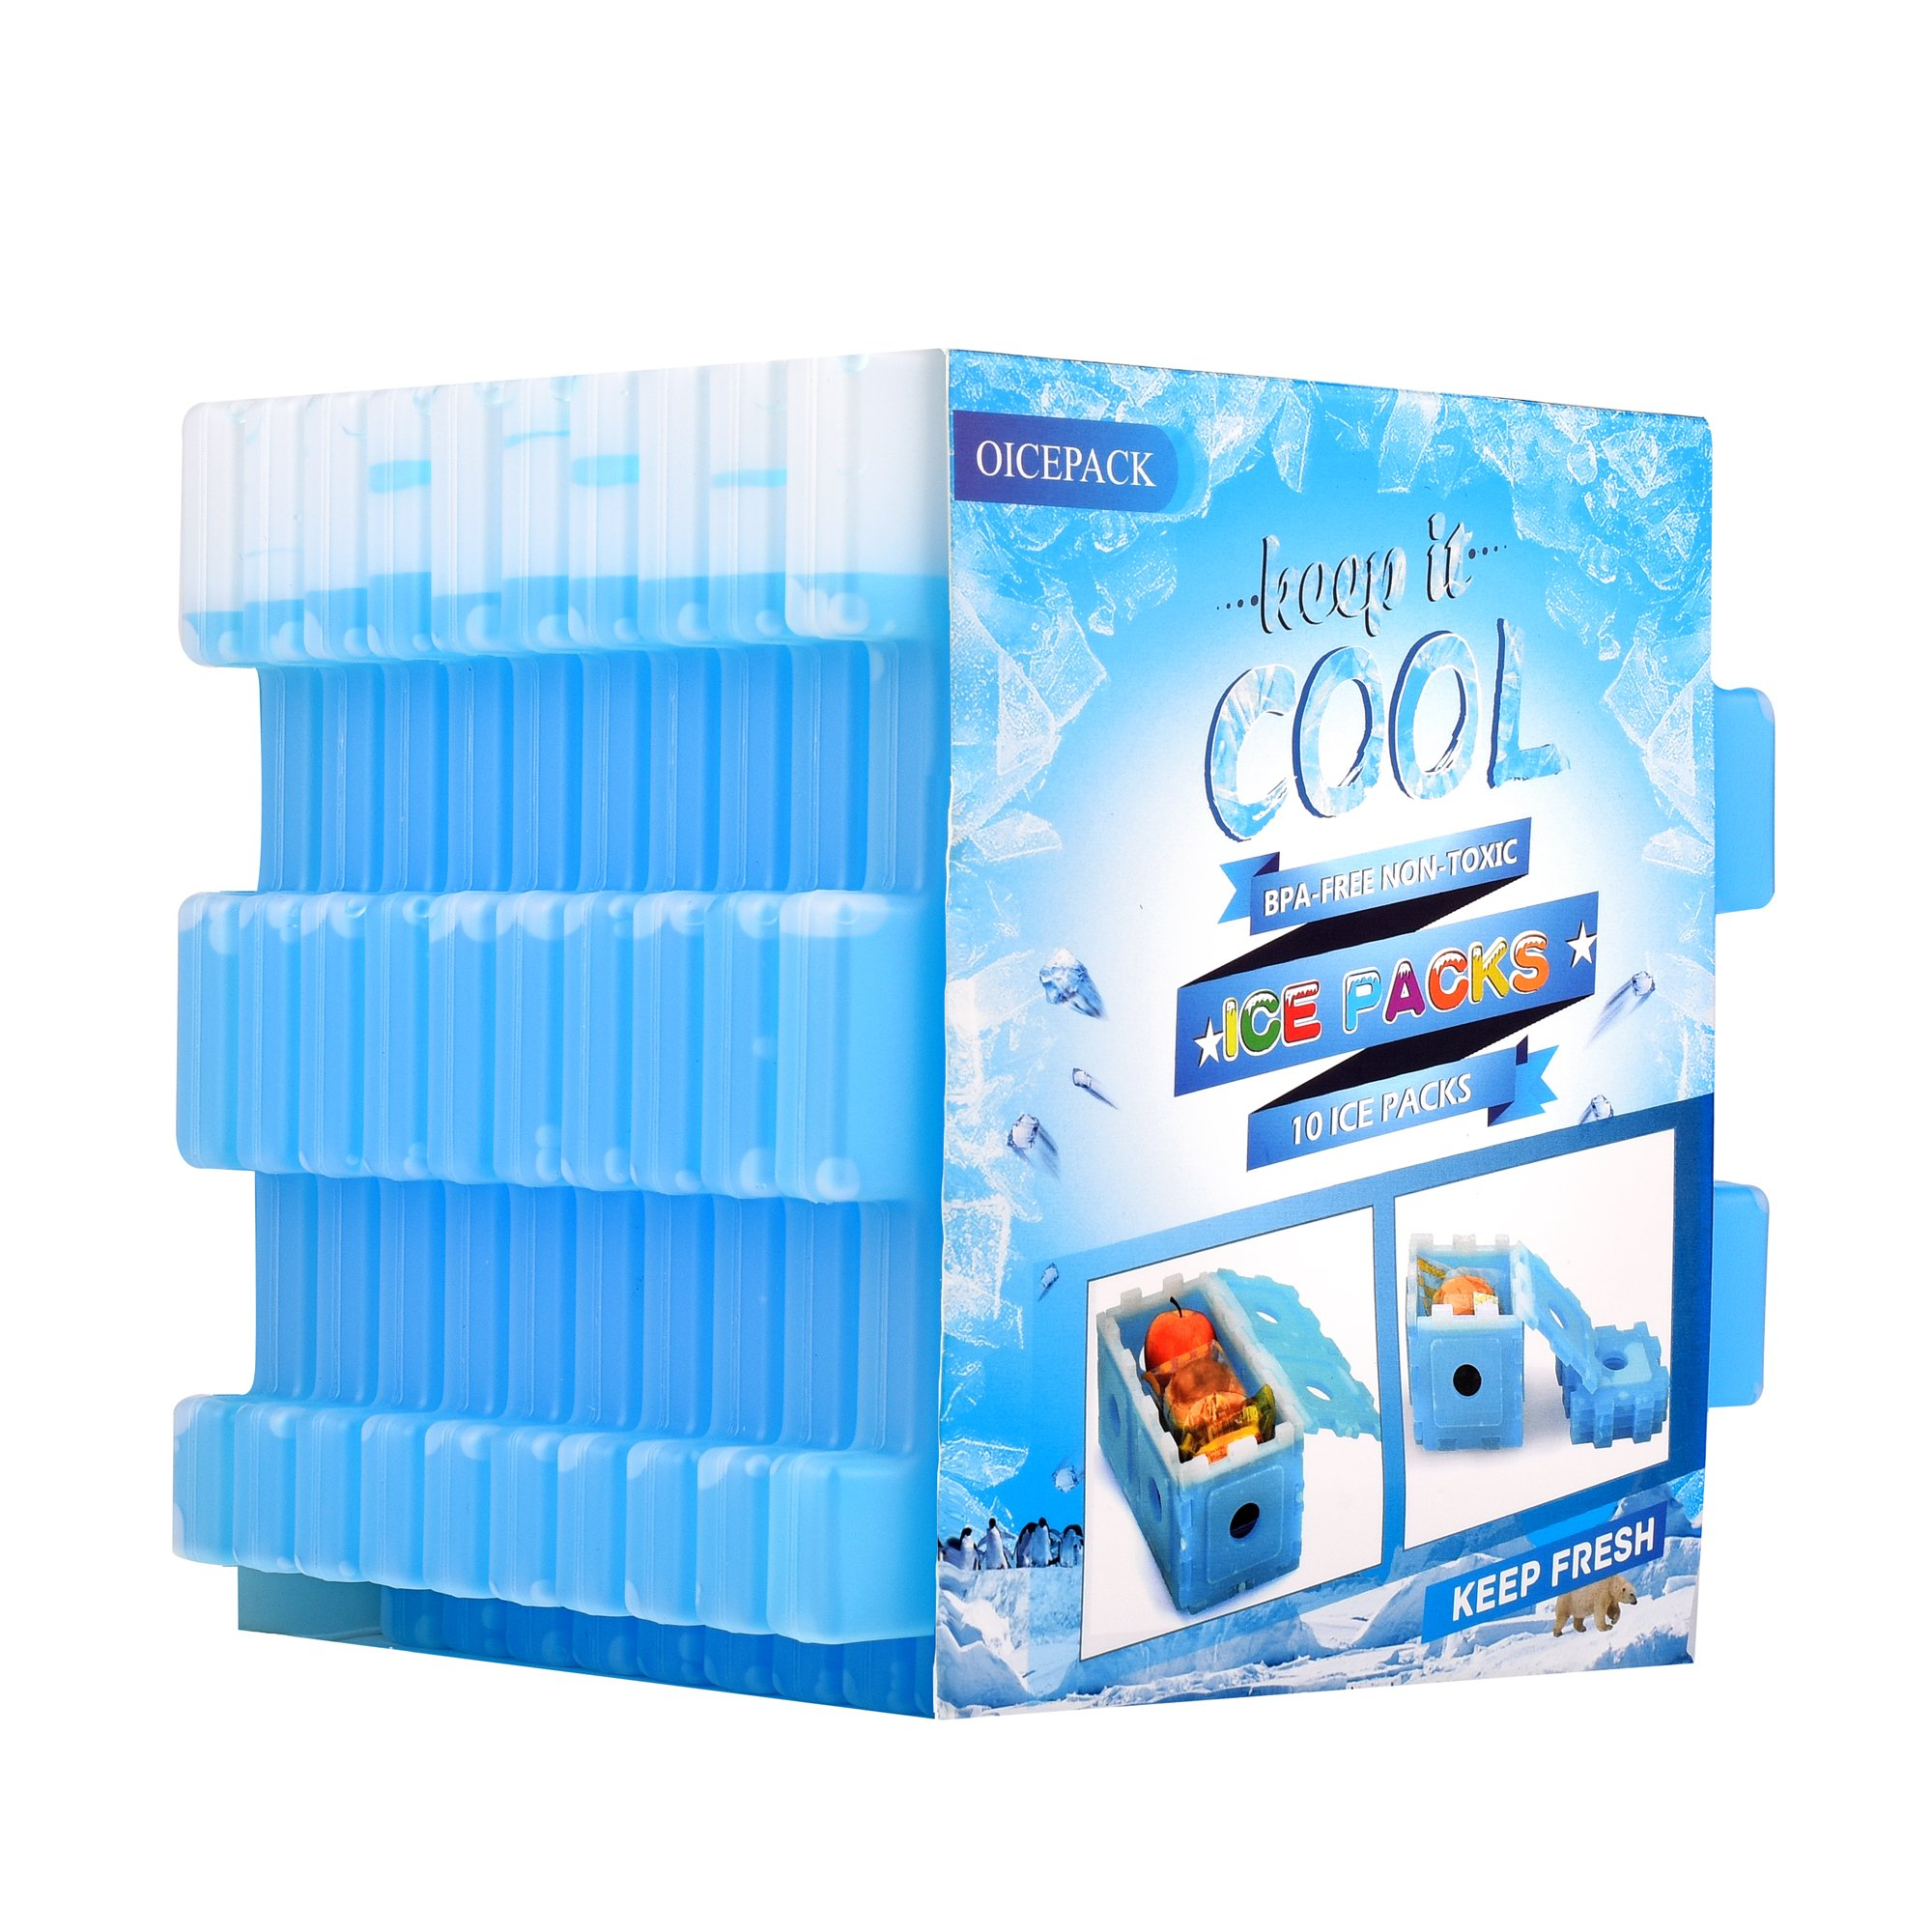 OICEPACK Ice Packs for Lunch Box - Freeze Boards Reusable - Slim Long Lasting Cool Freezer Blocks for Lunch Bags and Cooler